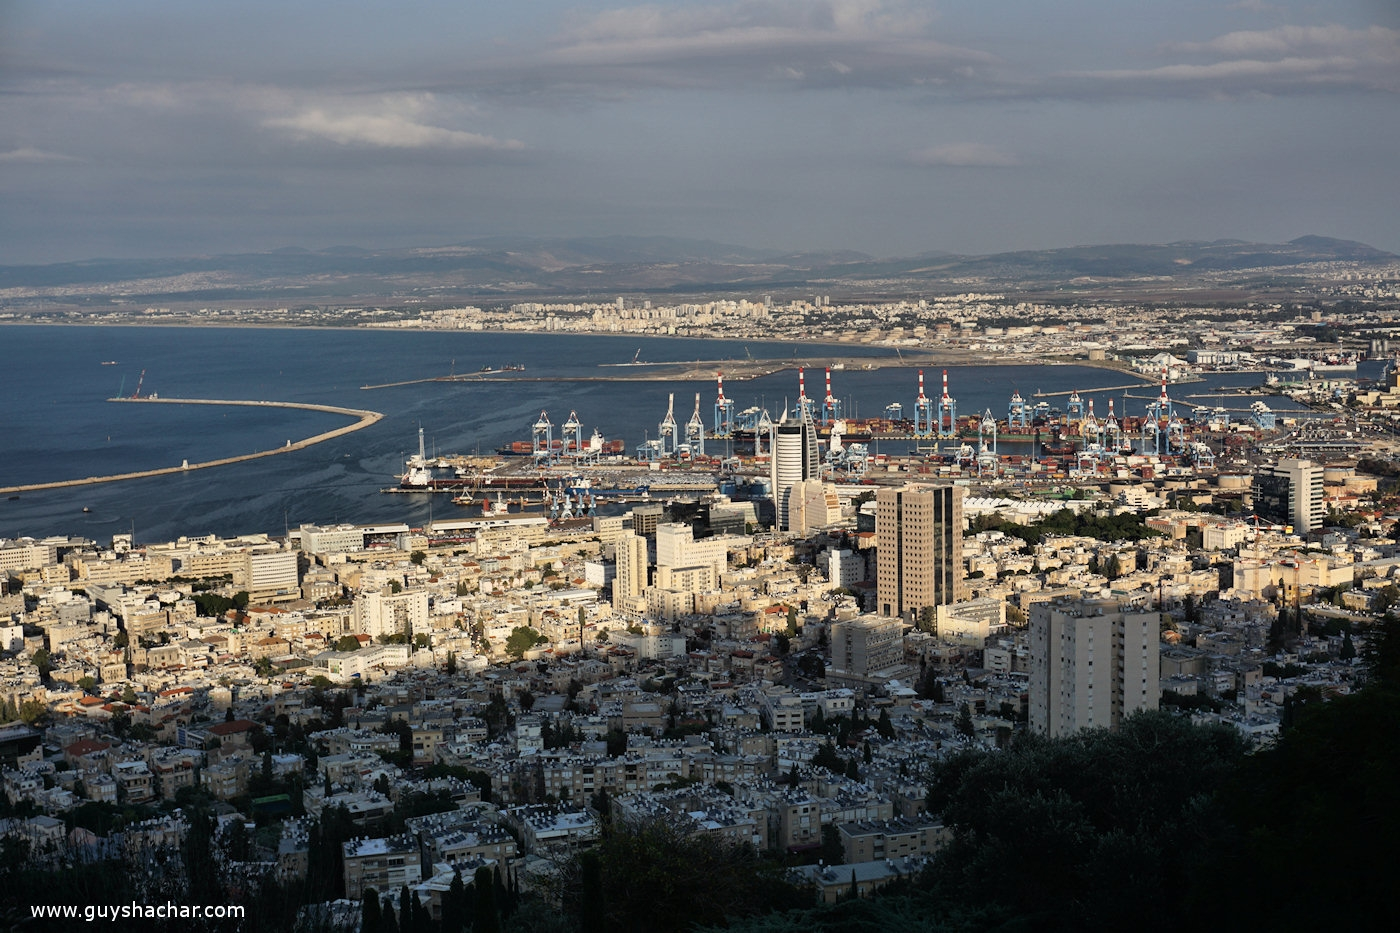 A new port is under construction on a crucial spot of Haifa Bay